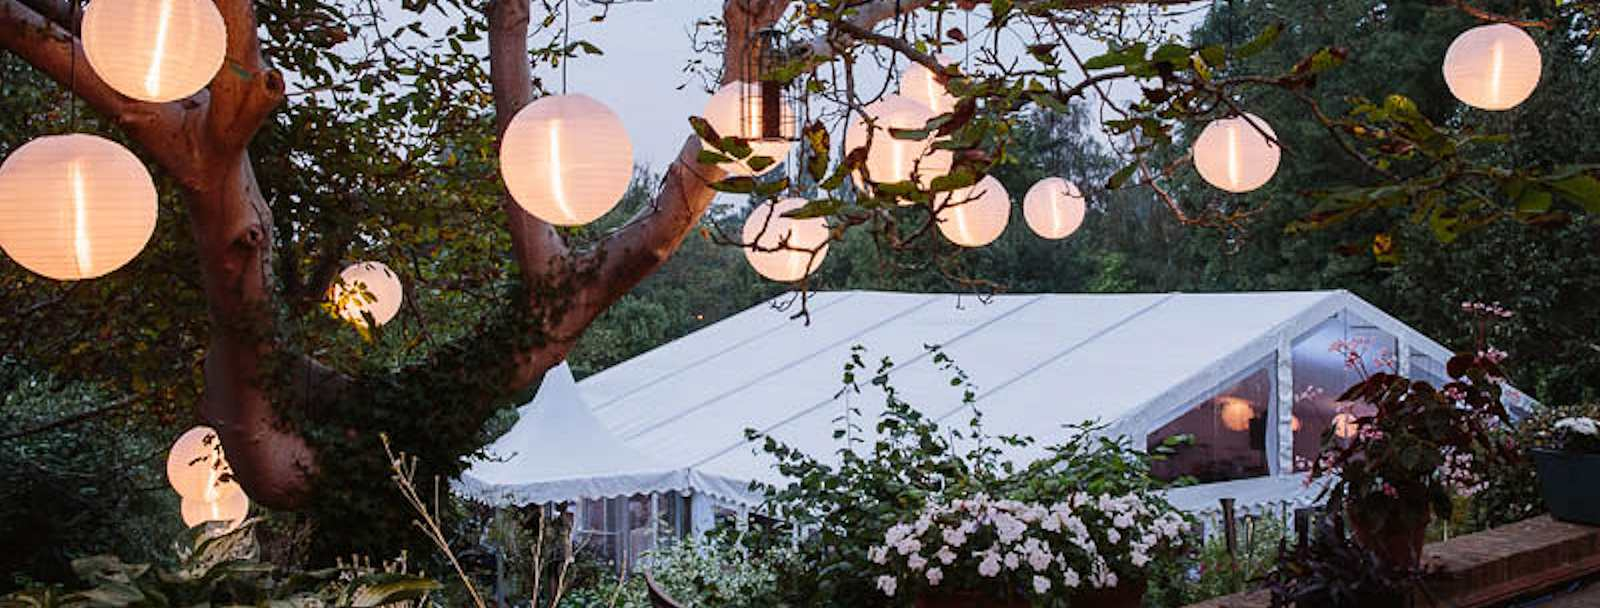 marquee roof and paper lanterns